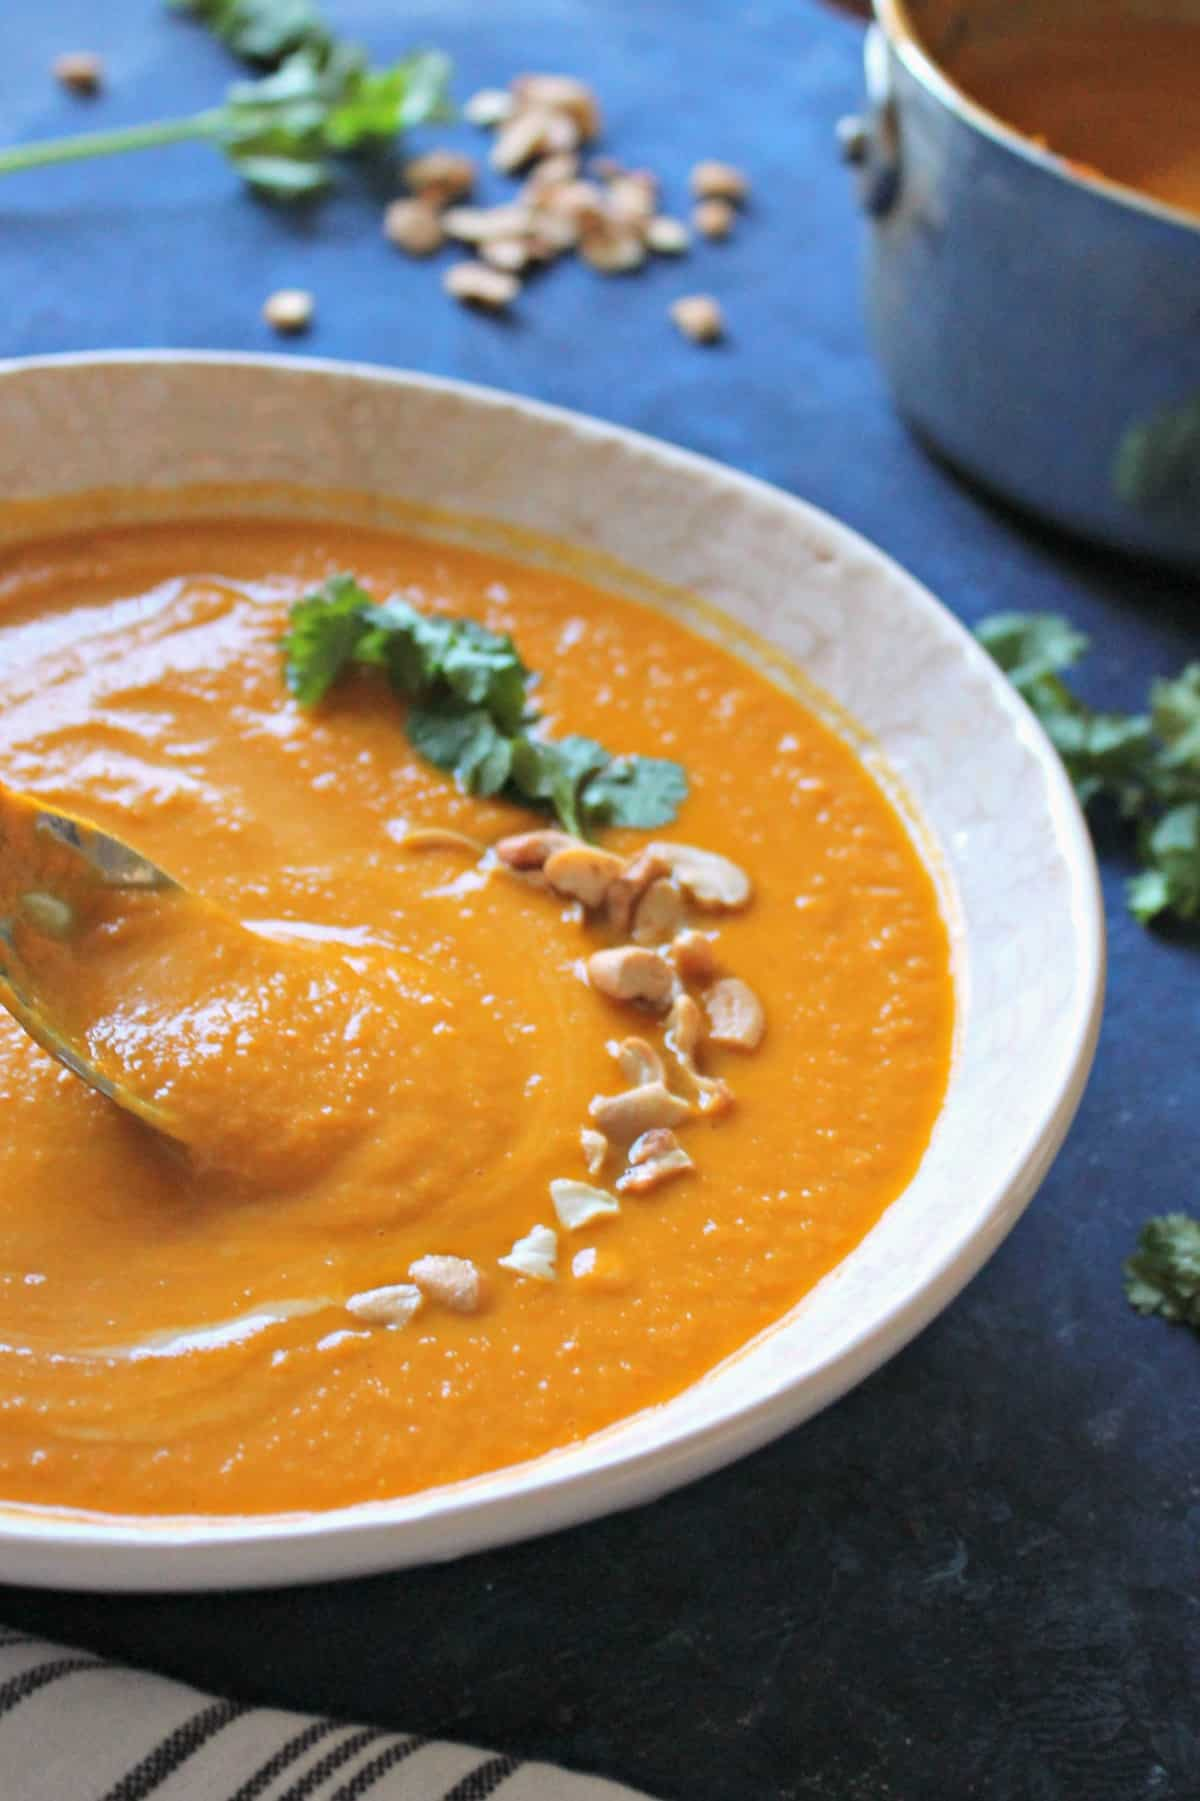 This creamy carrot ginger soup recipe is hearty and filling, and completely dairy free. It's a perfect, healthy comfort food